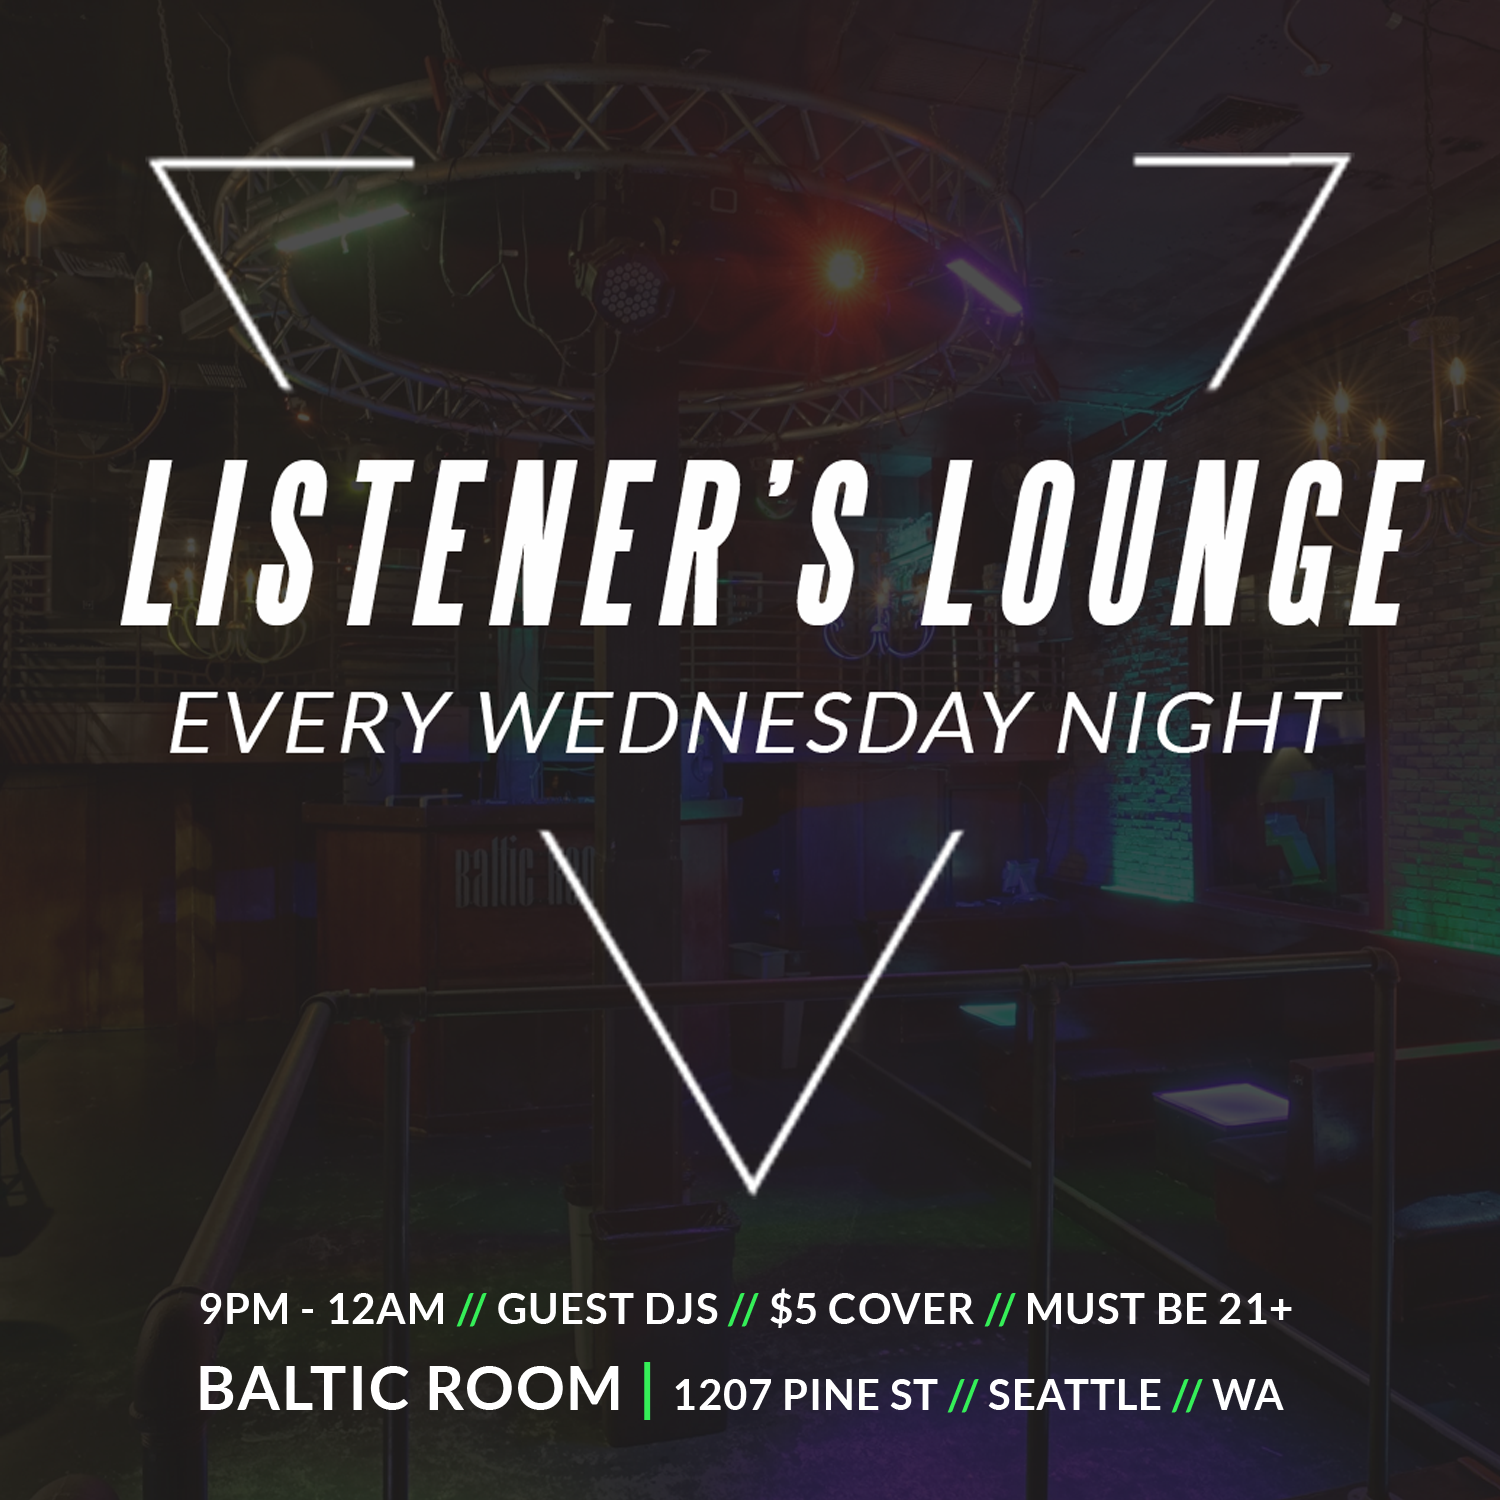 Every Wednesday at the Baltic Room